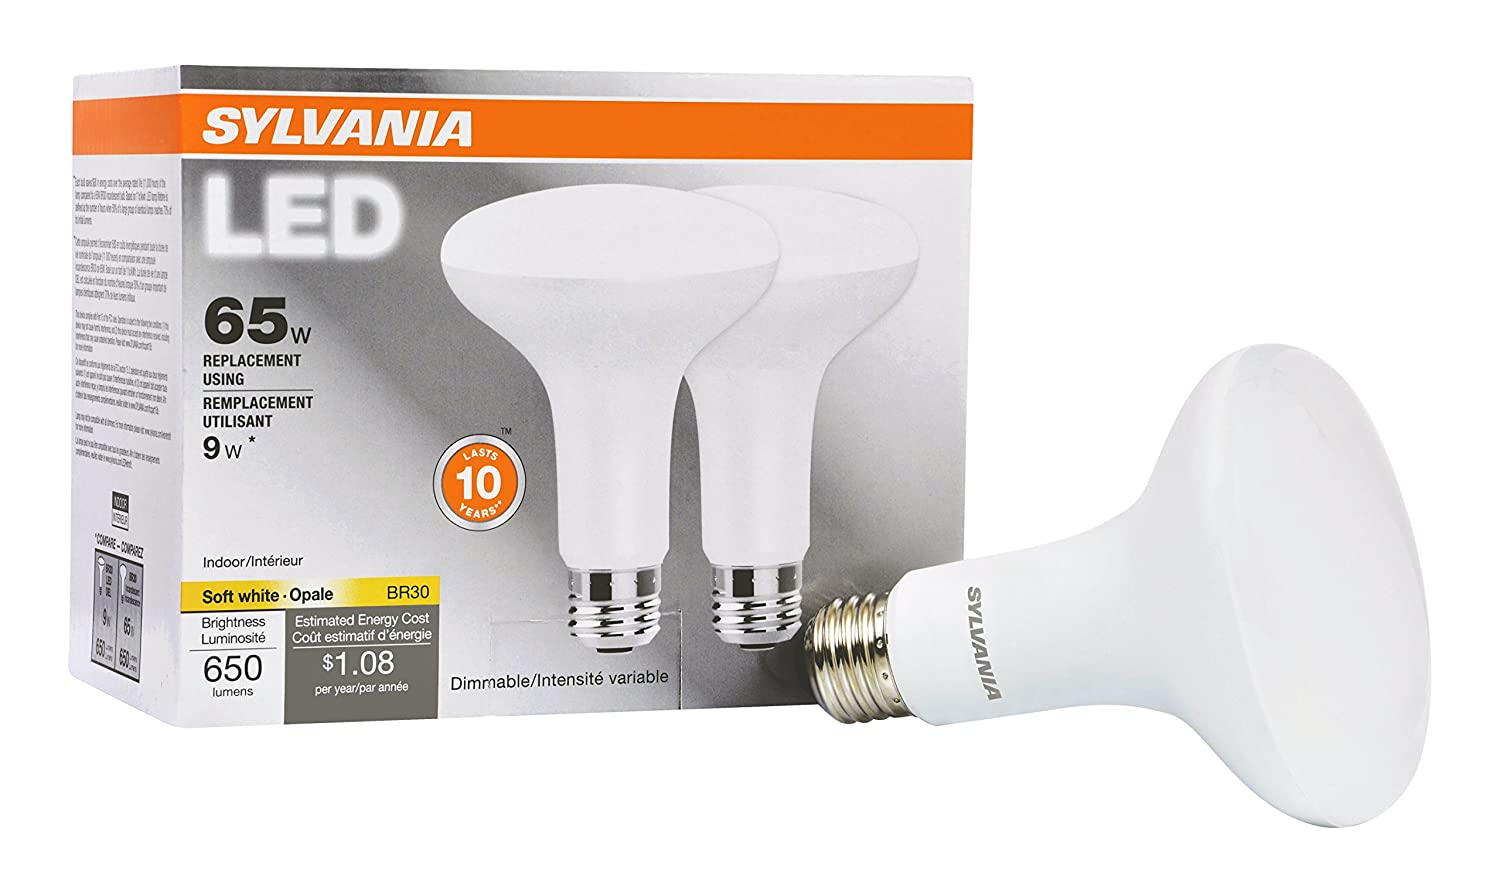 SYLVANIA, 65W Equivalent, LED Light Bulb, BR30 Lamp, 2 Pack, Soft White, Energy Saving & Dimmable, Value Series, Medium Base, Efficient 9W, 2700K